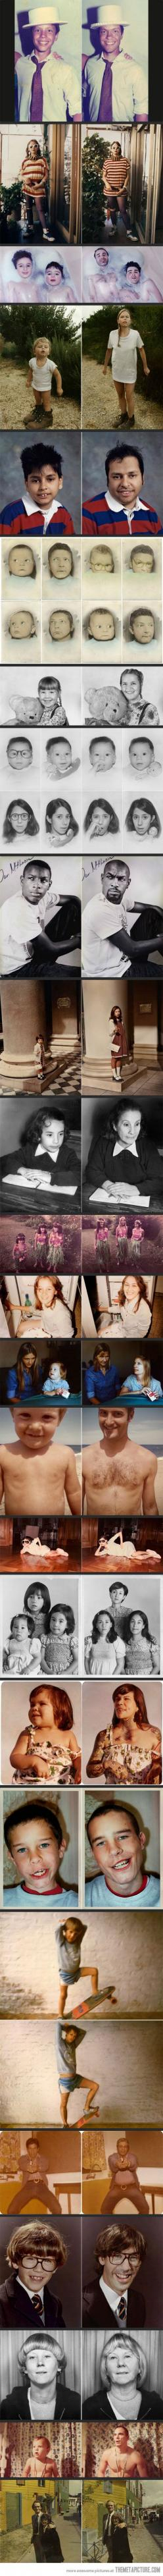 Then and Now Photos. great gift for parents - these kill me: Photos, Picture, Gift, Idea, Then And Now, Photo Recreation, Funny, Photography